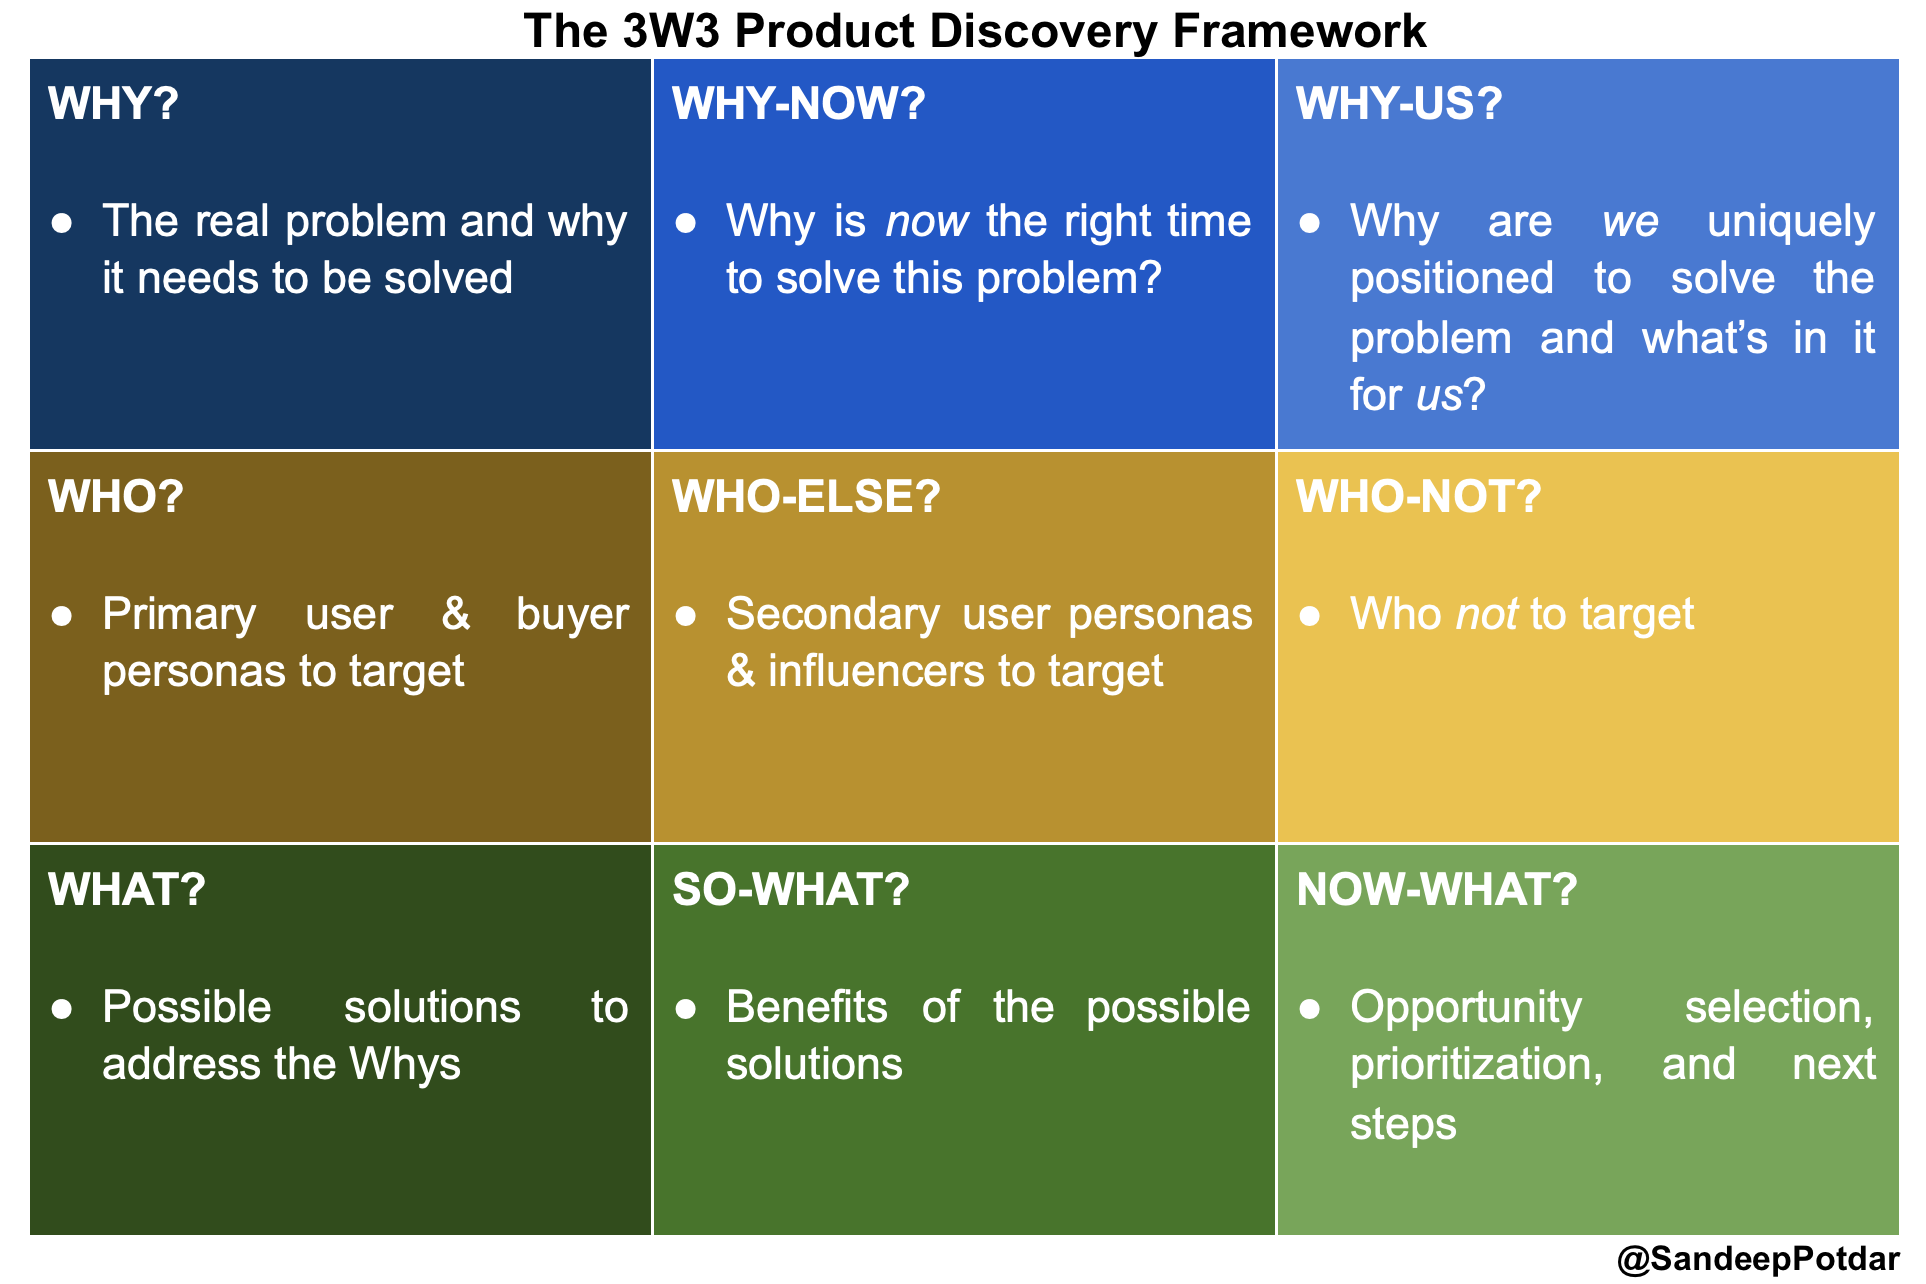 Product Discovery using the 3W3 Framework